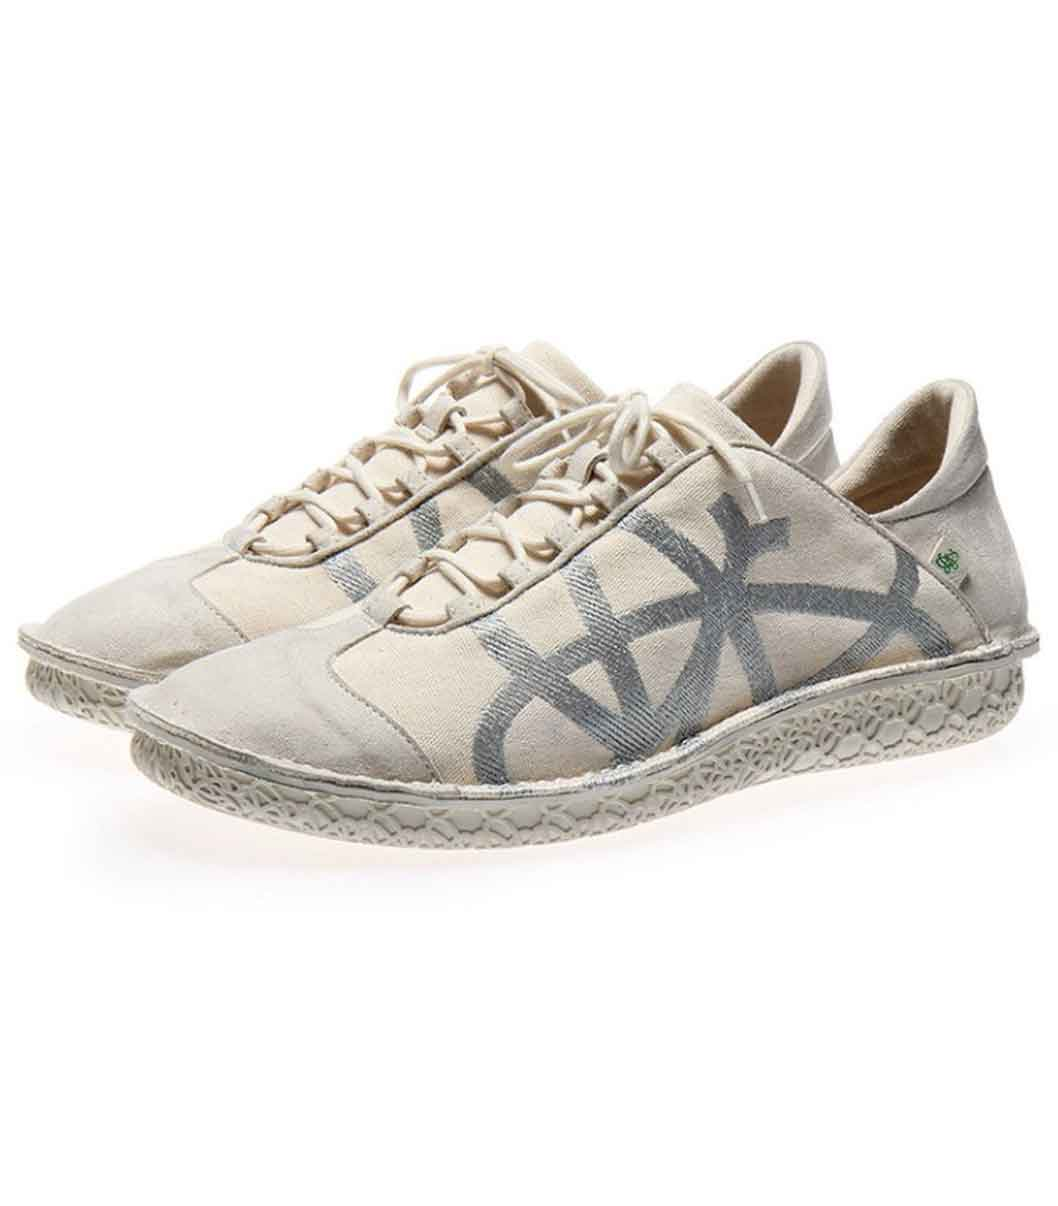 Women's Vegan Sneakers | Po-Zu Brisk V Off White | Sustainable Shoes